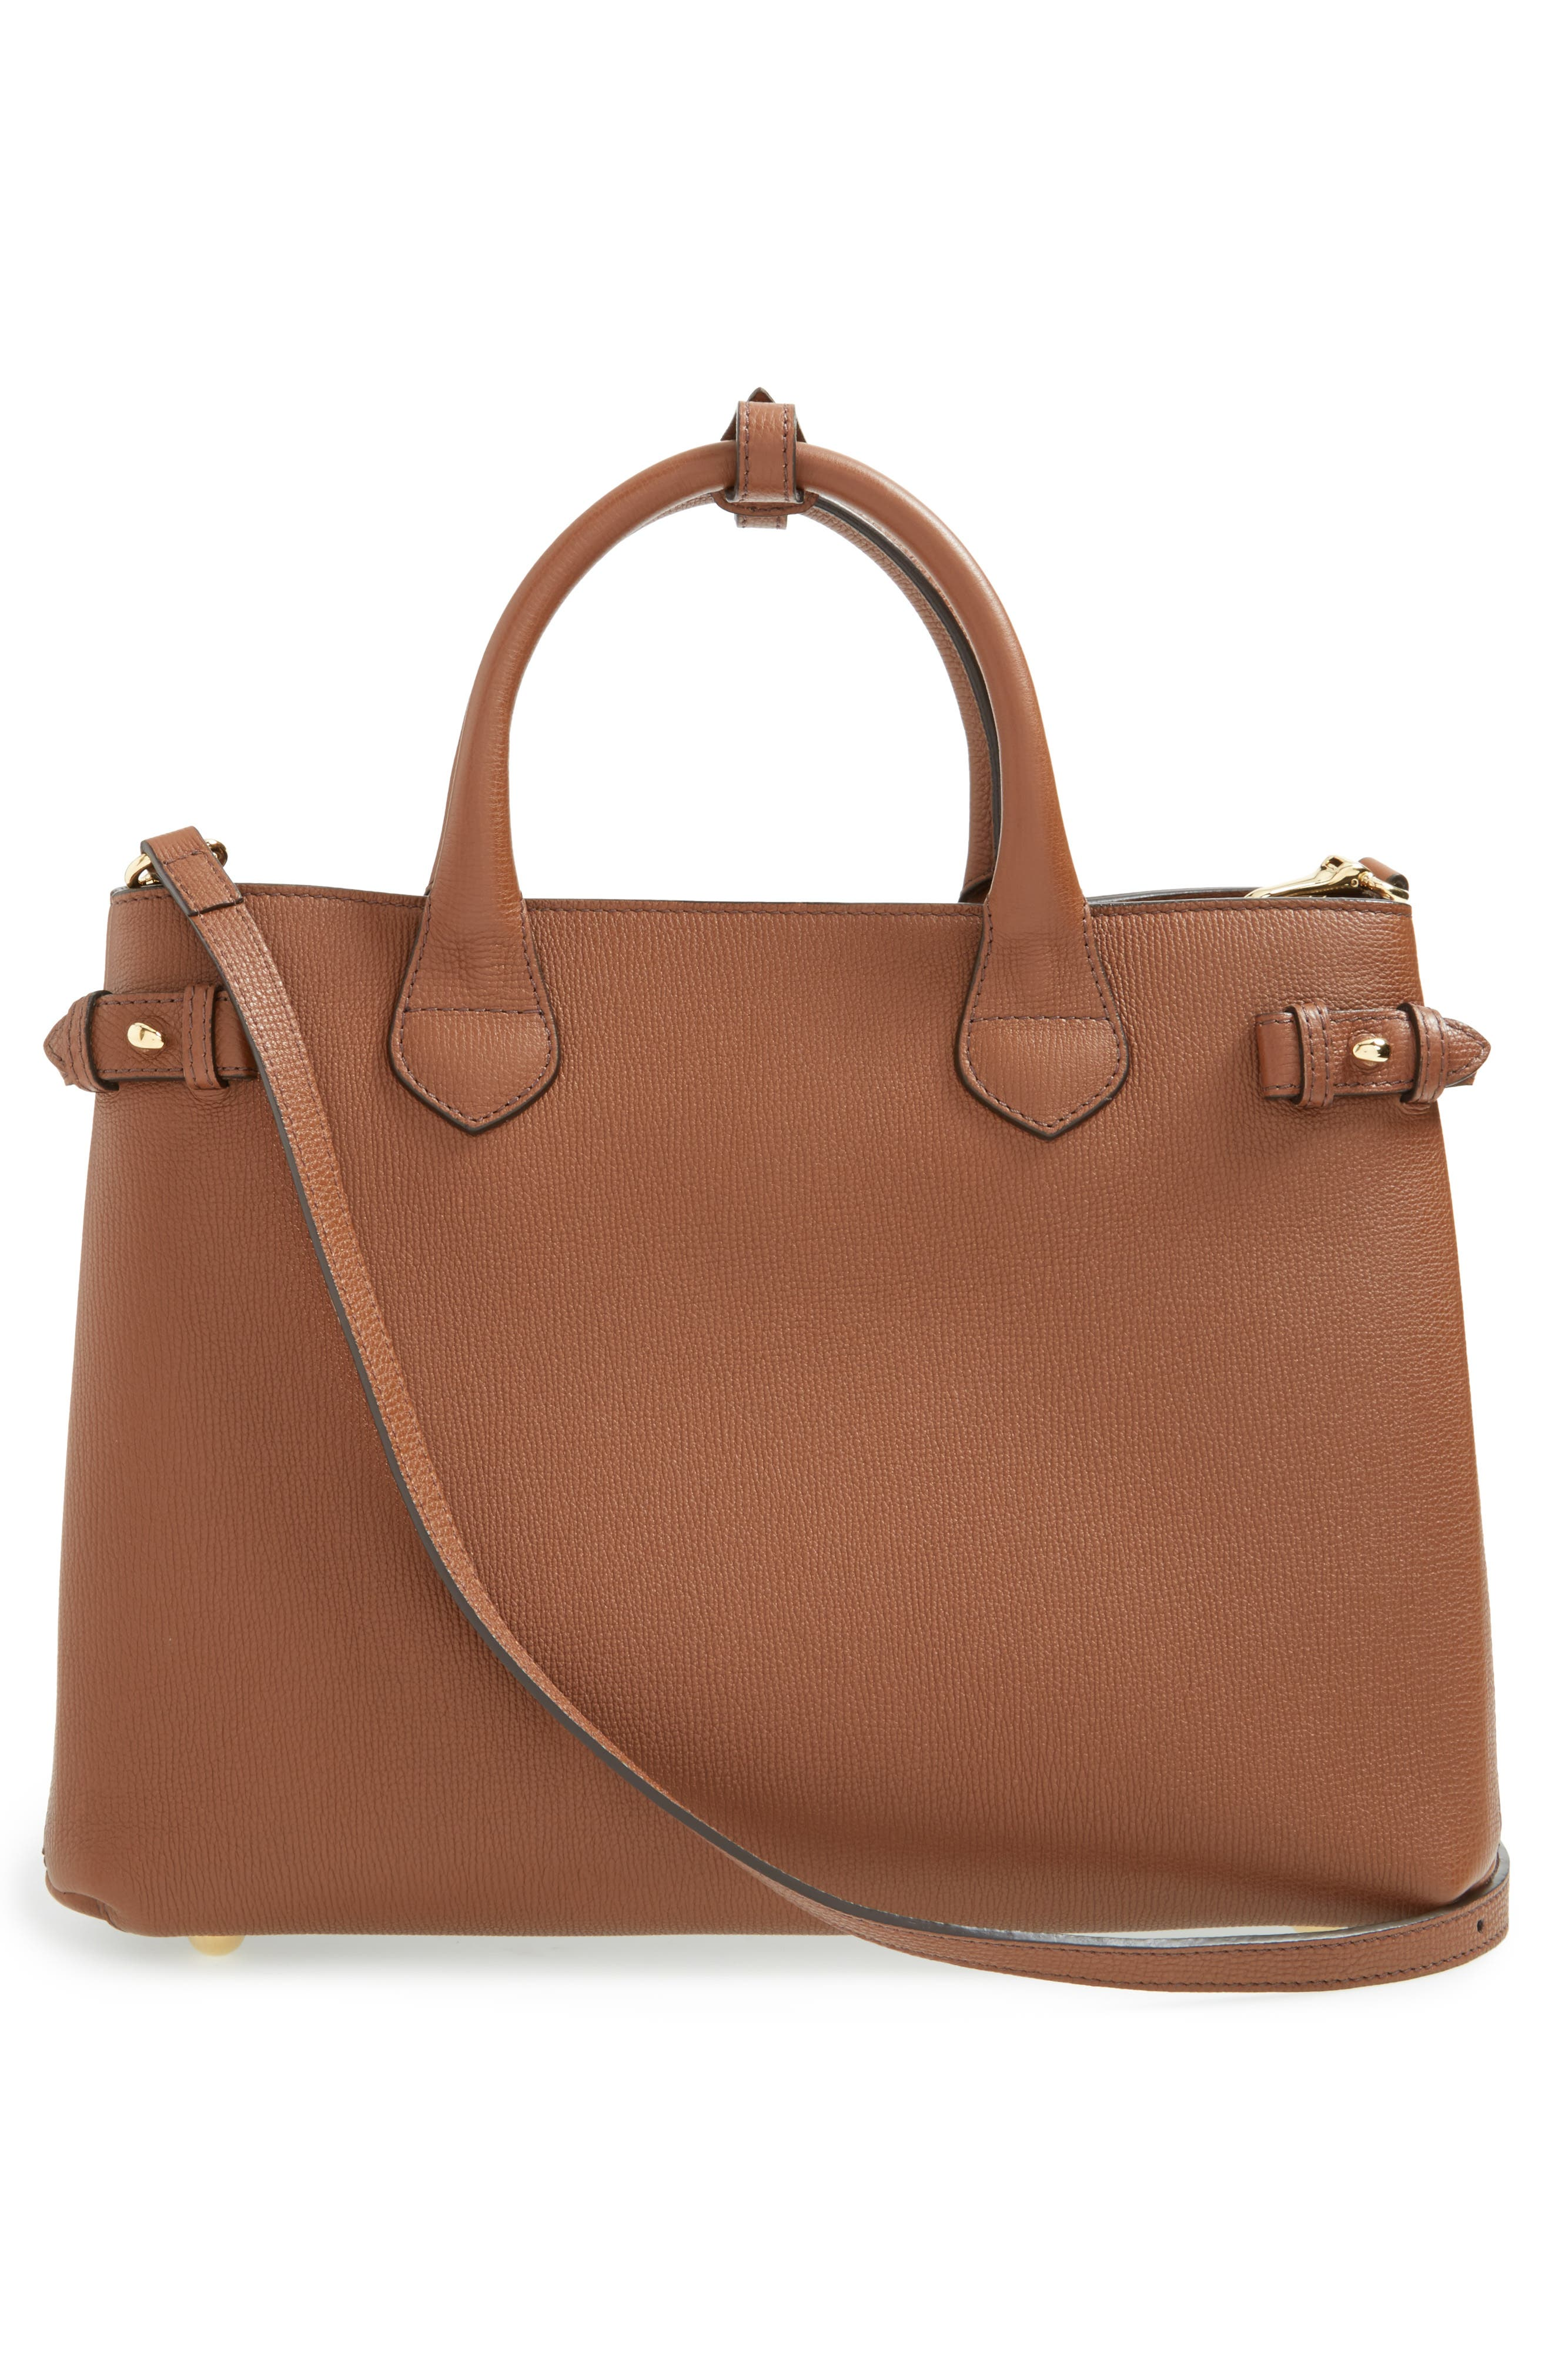 Medium Banner House Check Leather Tote,                             Alternate thumbnail 4, color,                             251